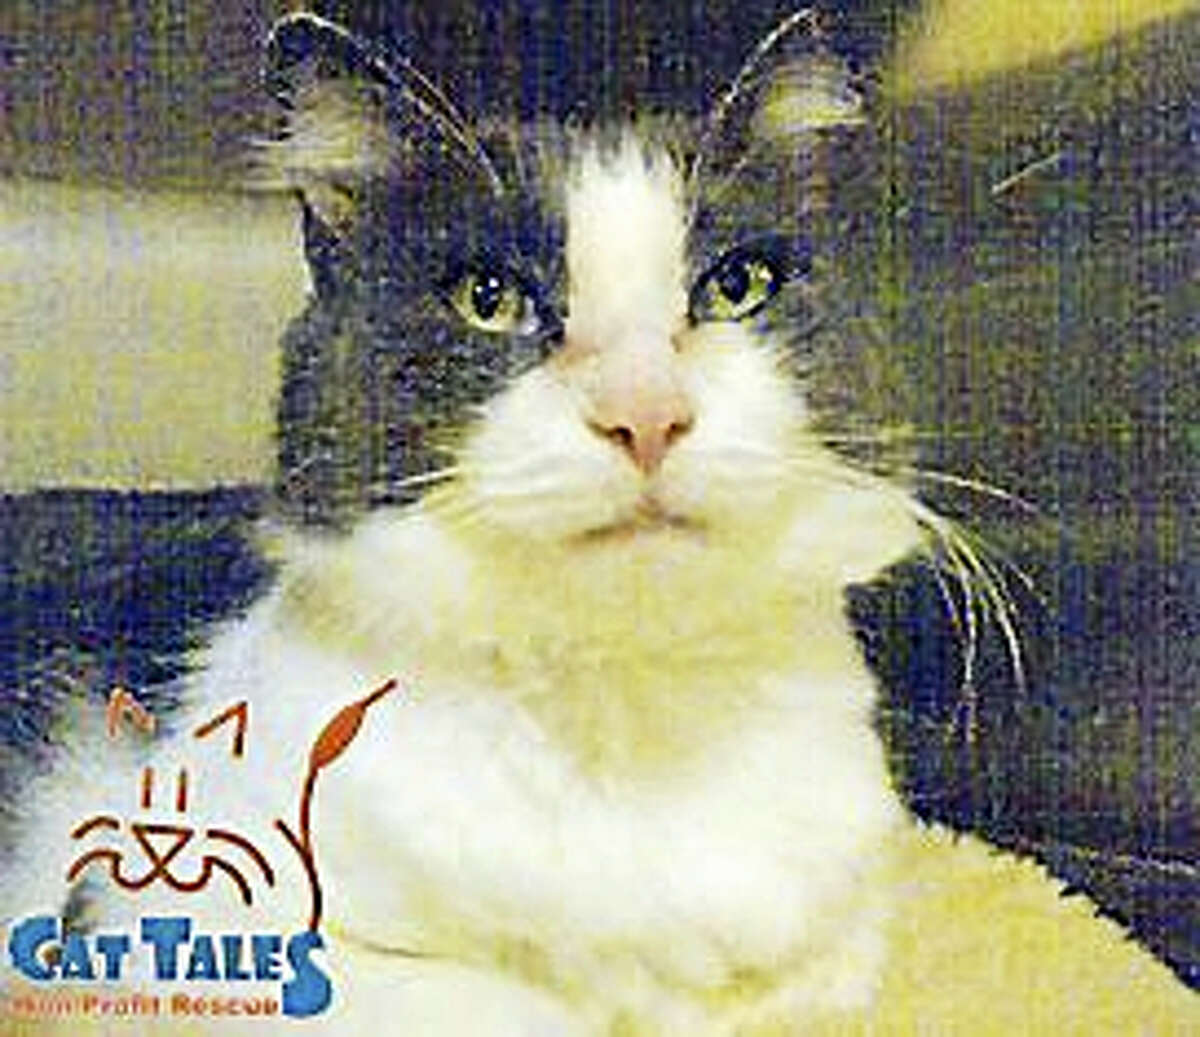 ?I am such a sweet boy who loves to be pet and loves attention. ?I'd let you pet me all day! I'd be good with children 10 or older. I'd love ?to snuggle in your warm bed ?with you? or to ?just ?lay on the couch ?next to you. I?t makes me so happy when you talk to me quietly and spend ??time with me. Please adopt me? today! No DogsNo Children? ?? ?Web: http://www.Cat TalesCT.org/cats/Gideon Phone: (860) 344-9043 Email: ??Info@CatTalesCT.org??